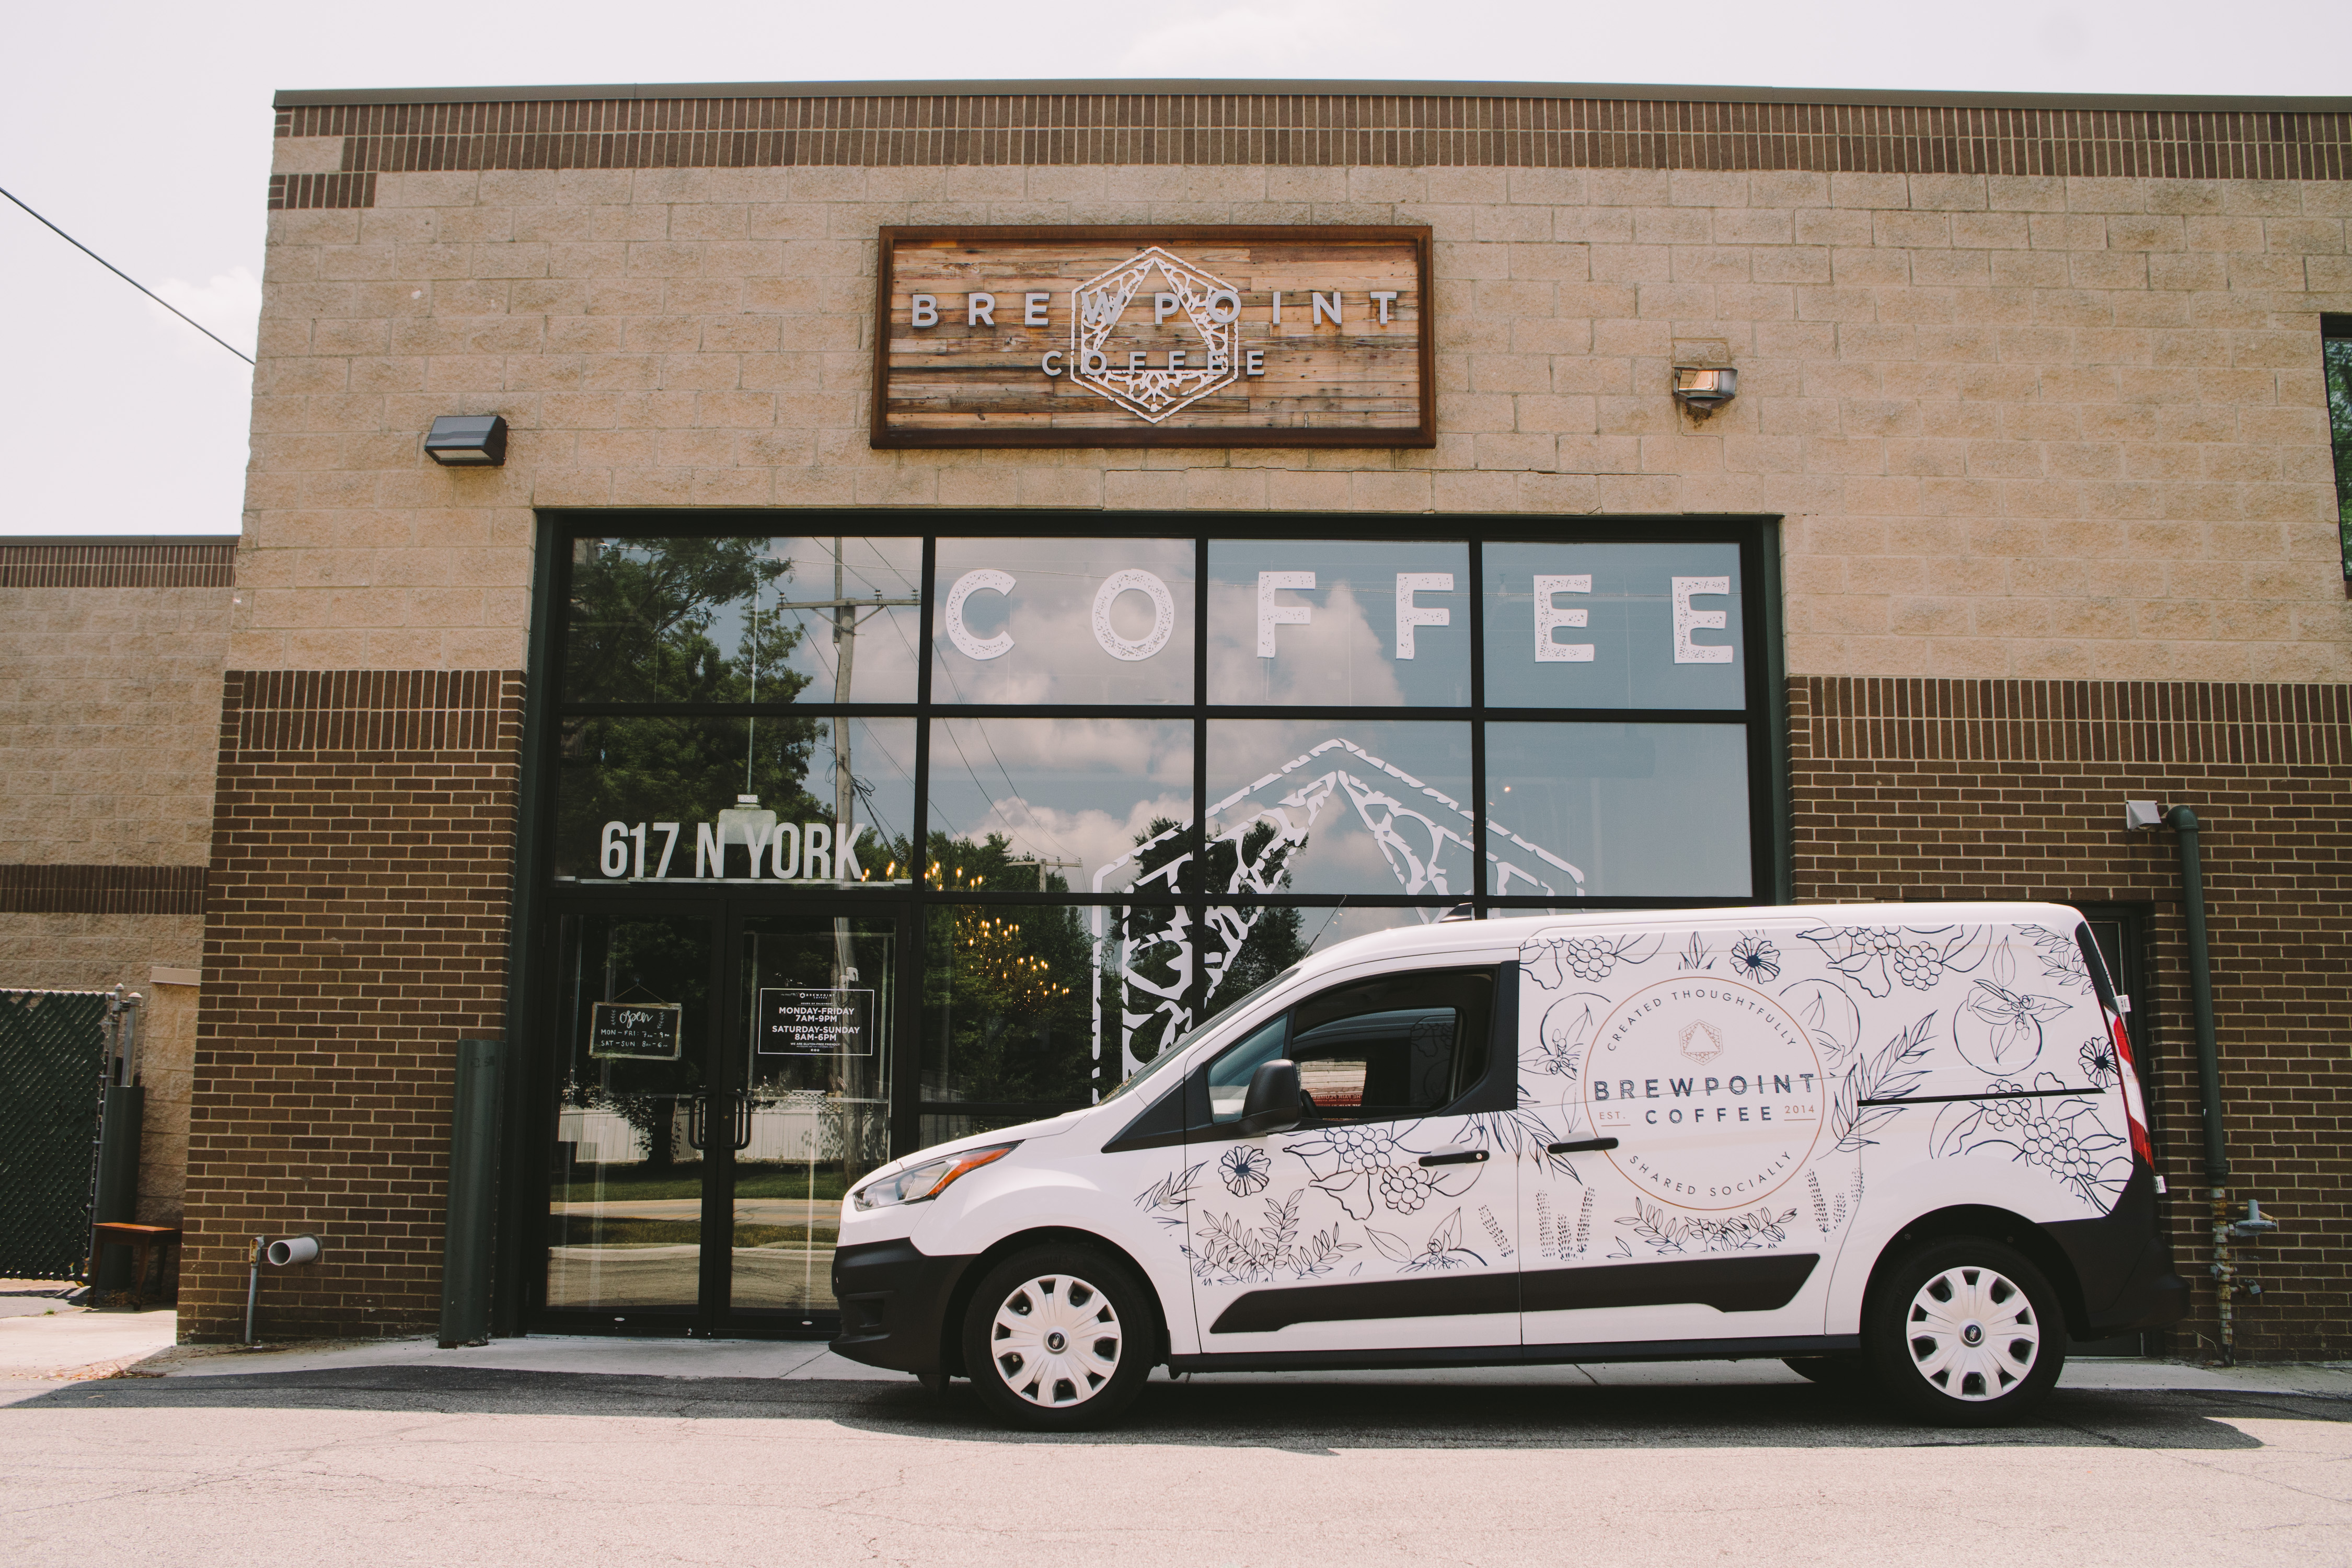 Vehicle wrap design for Brewpoint Coffee.